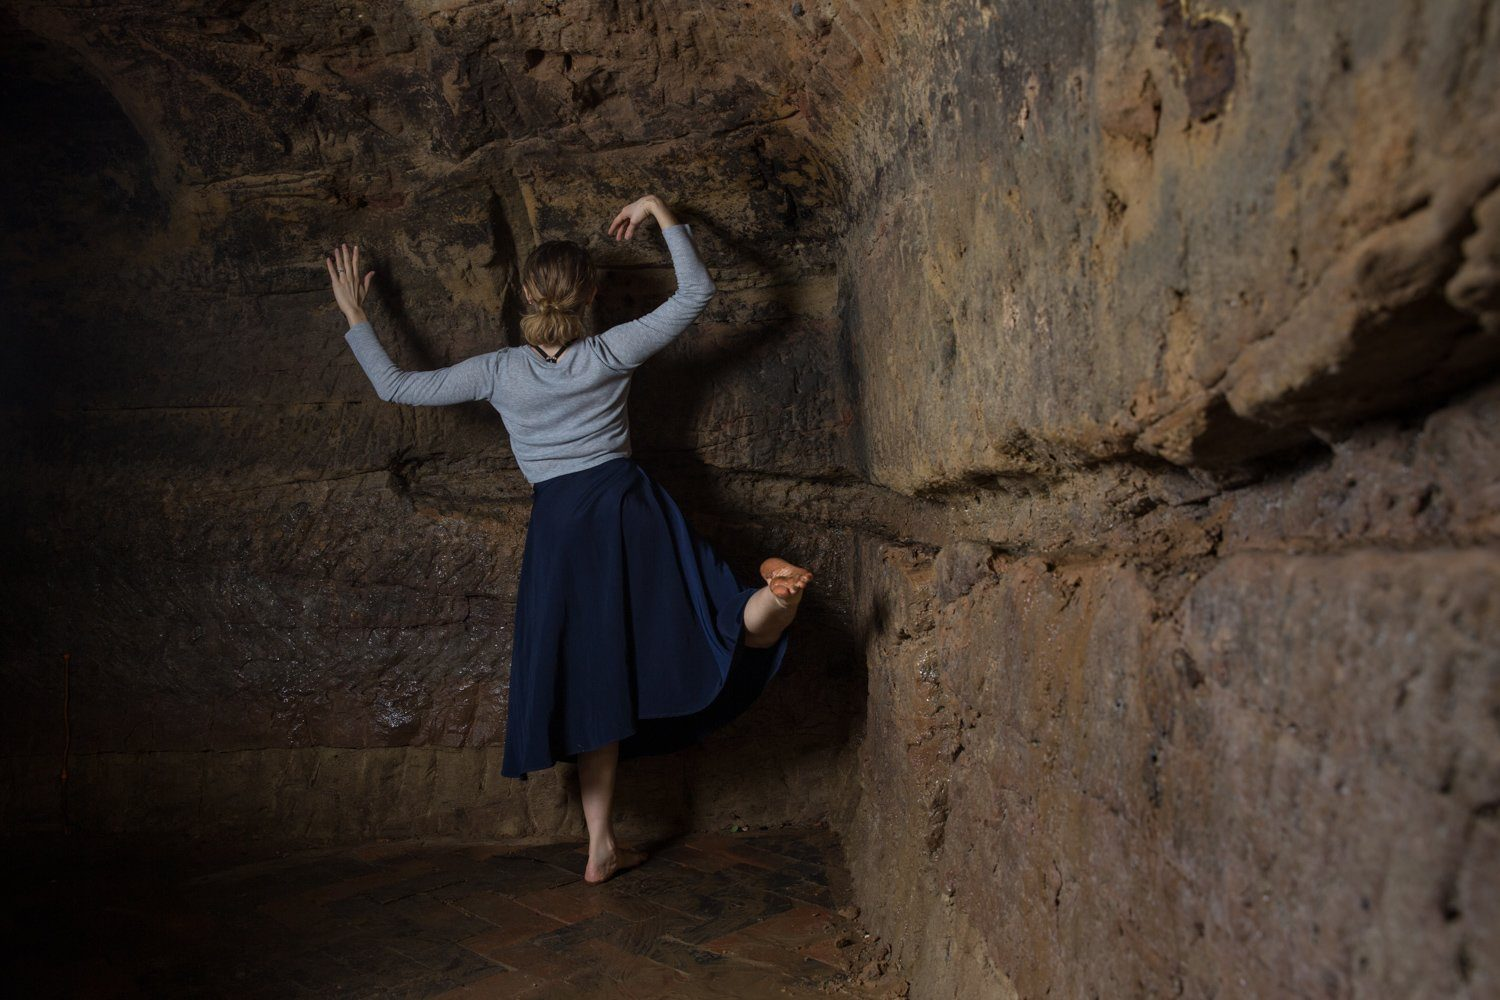 Amy Harris being silly while dancing in the caves of the Maltcross in Nottingham